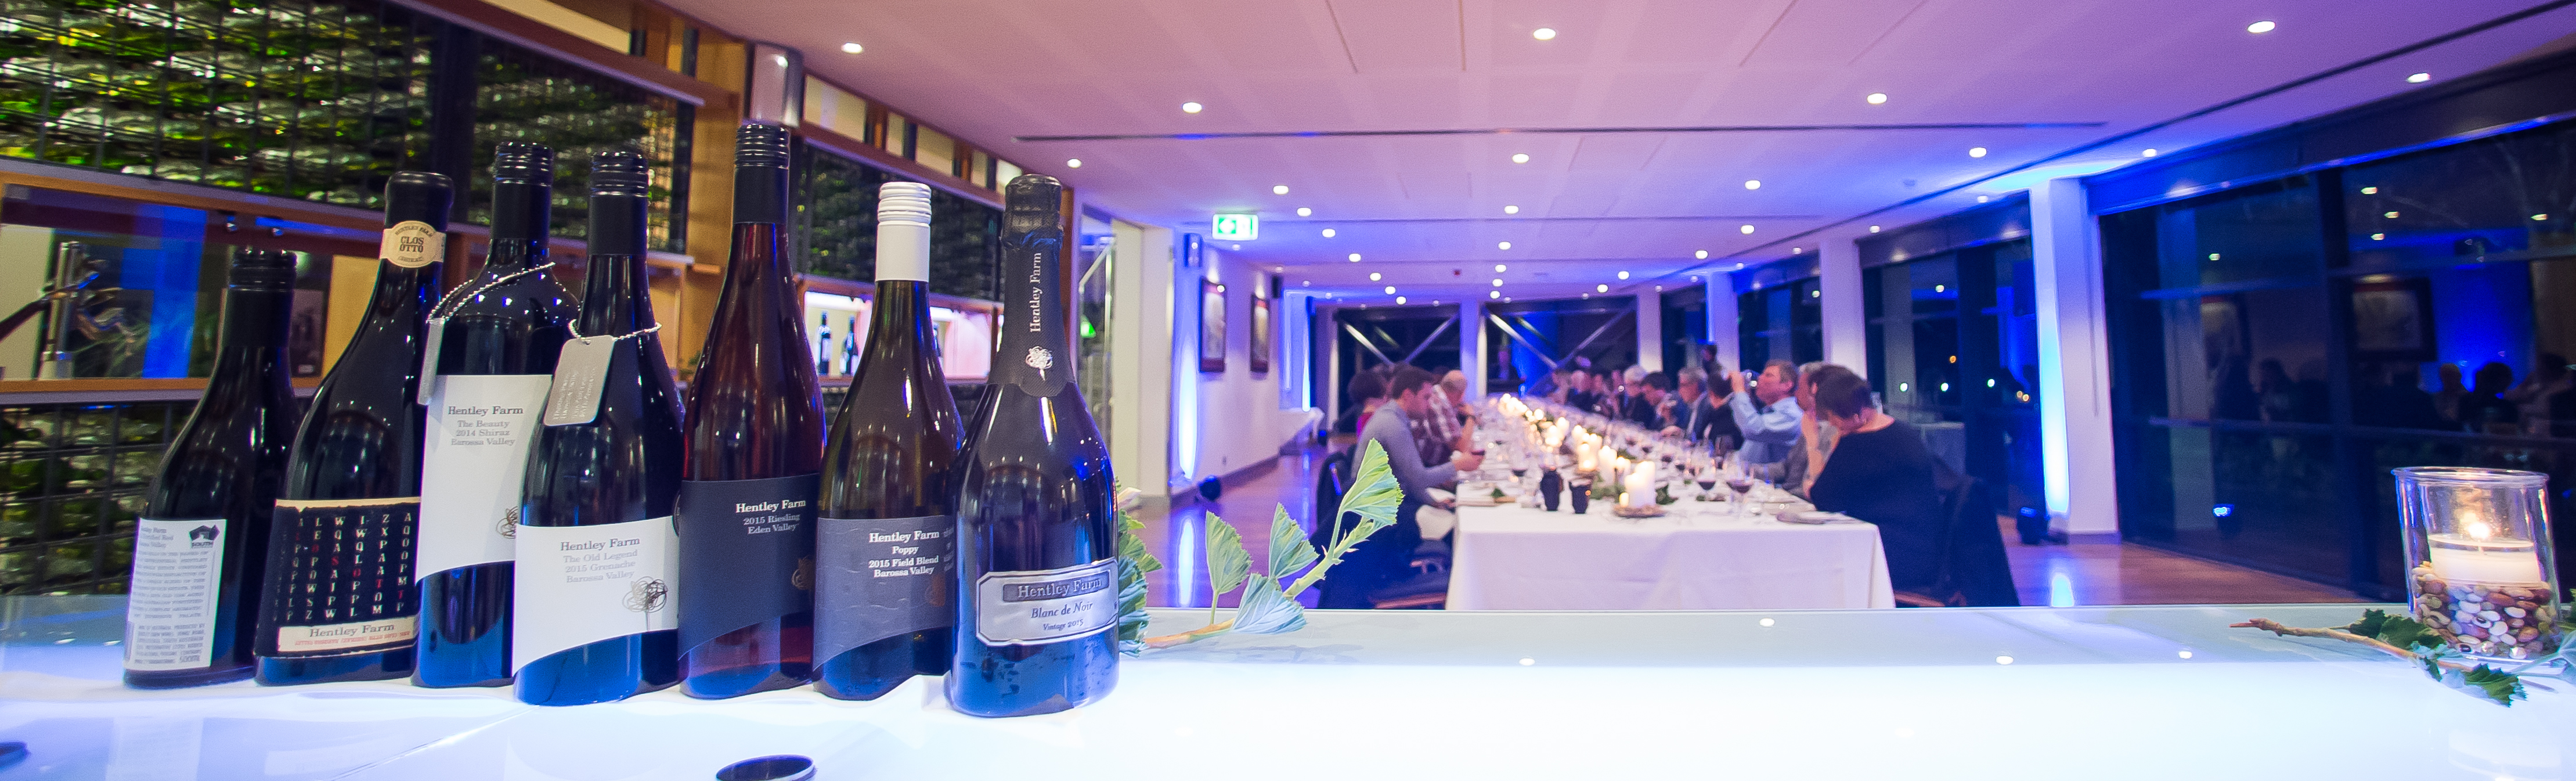 Wine image, wine bottles on a glass bar top, corporate dinner event, National wine centre